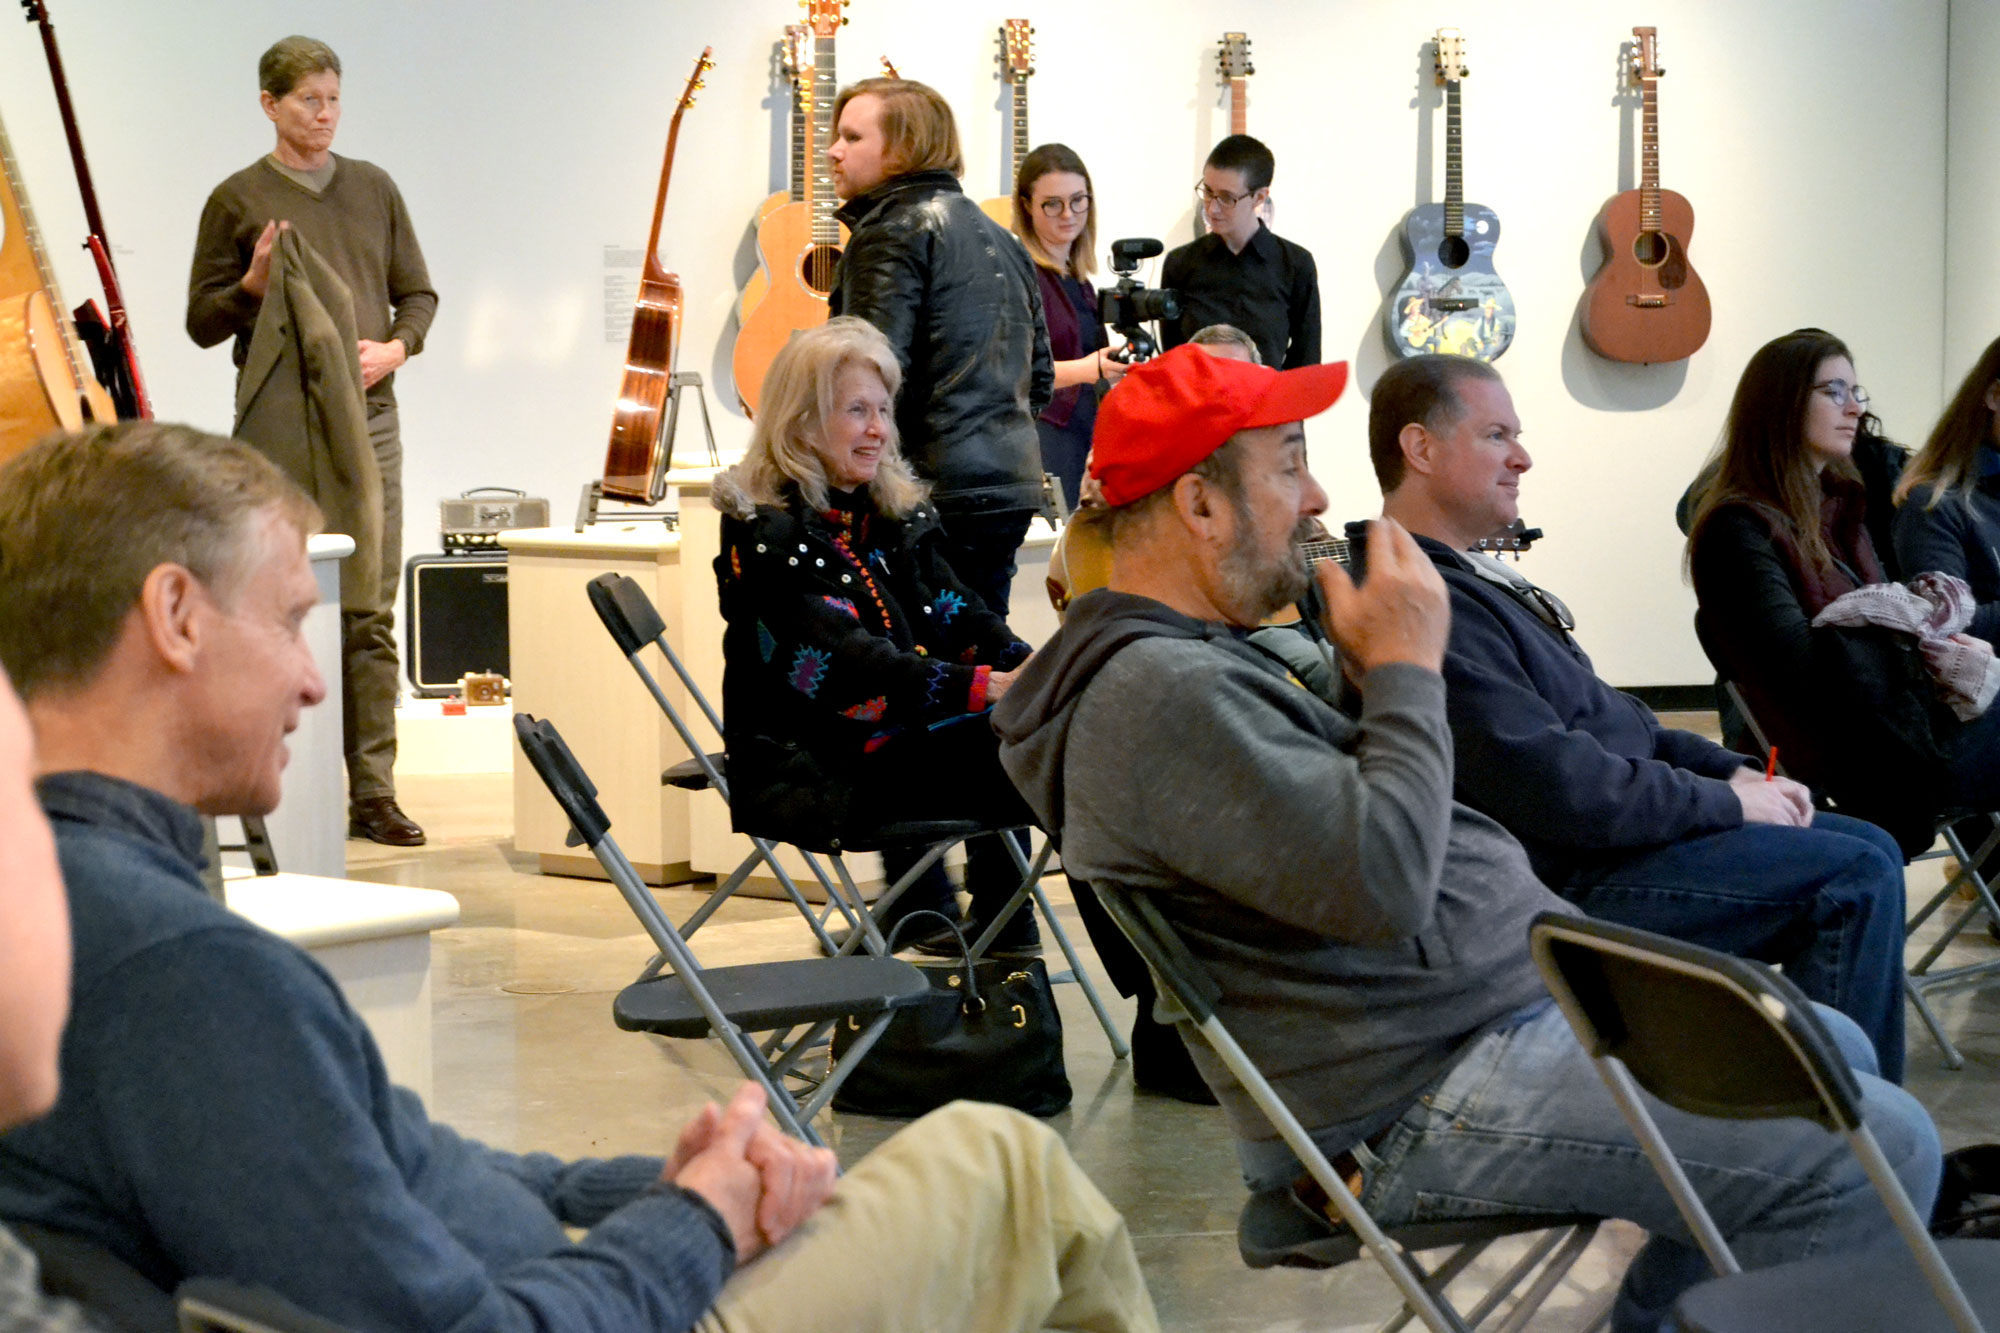 Image of an audience watching a bluegrass performance with a background of hanging guitars